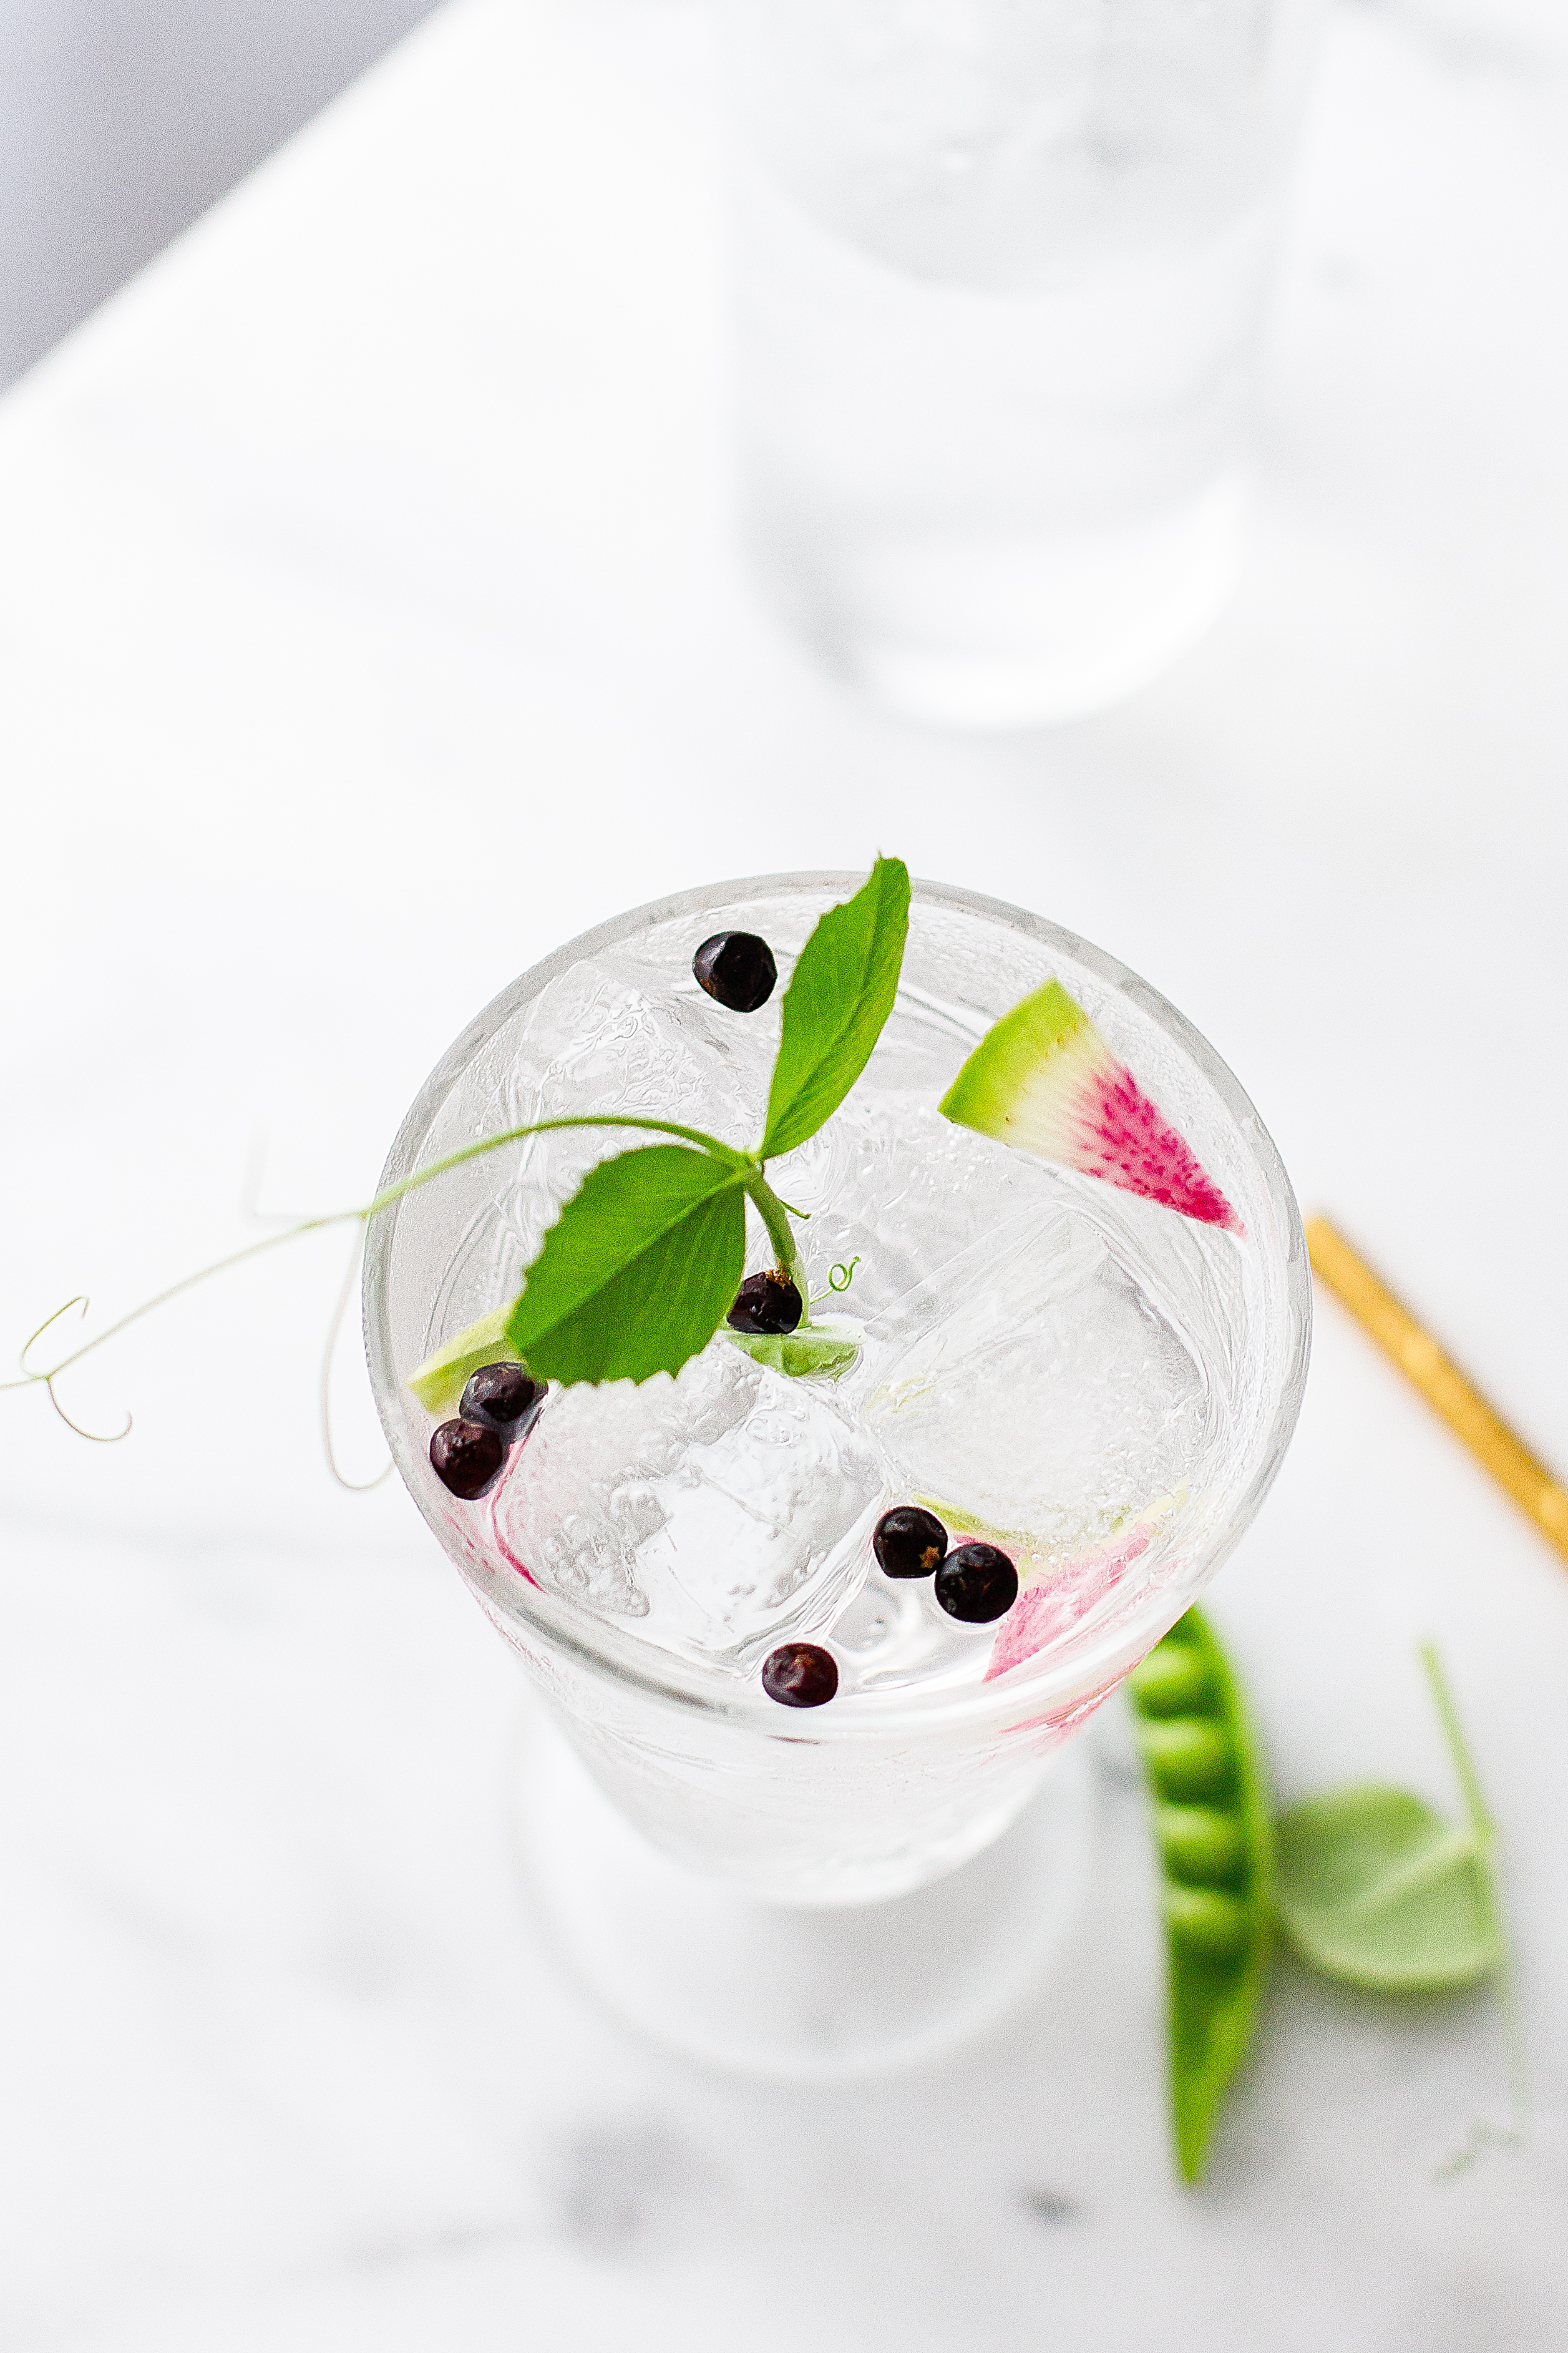 Spanish Gin & Tonic | Snap Pea | Watermelon Radish | Cocktail Recipe | Summer Drinks